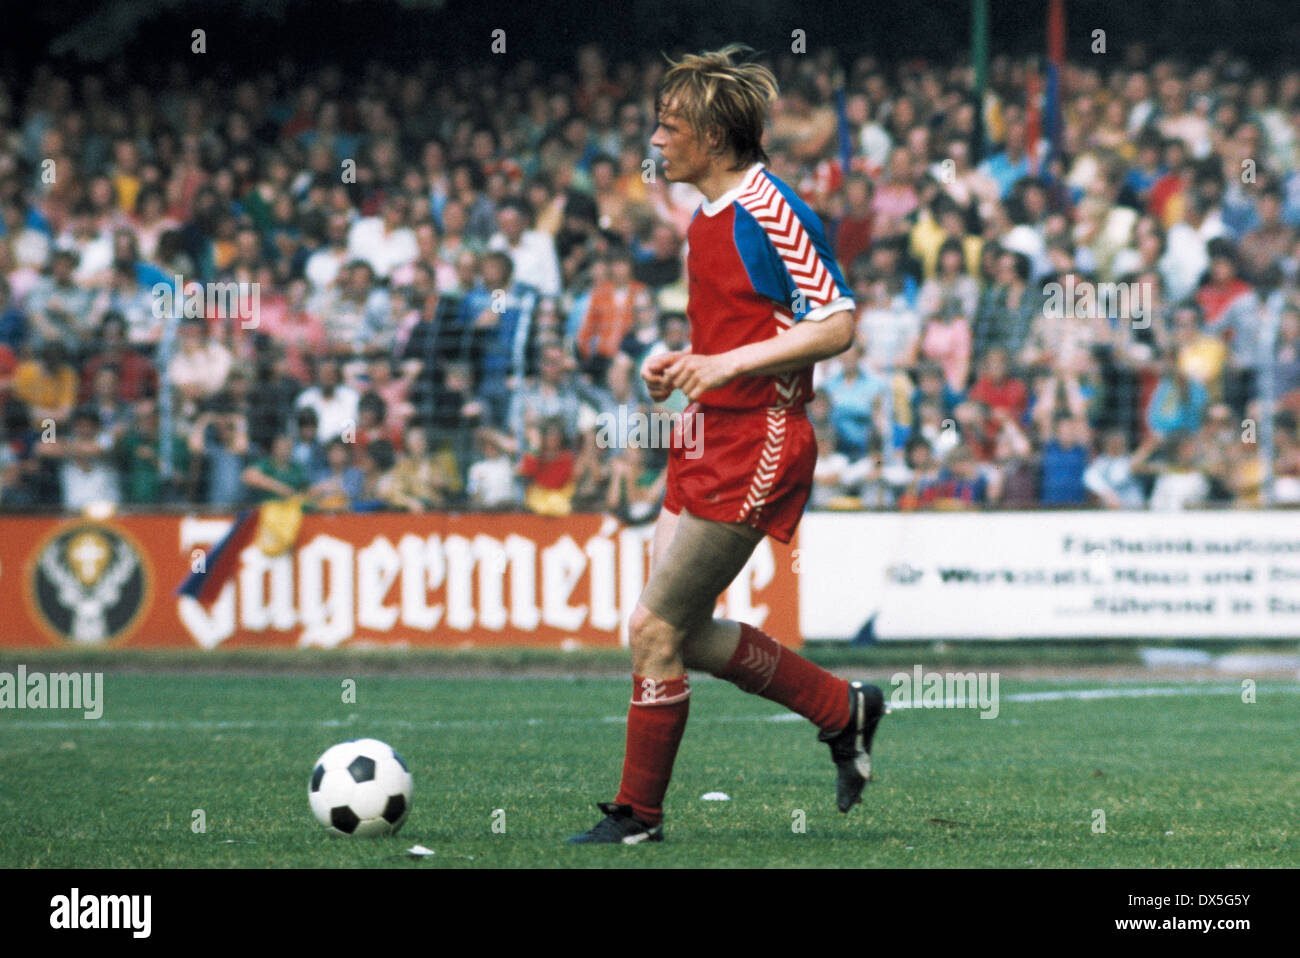 football, 2. Bundesliga Nord, 2. Bundesliga Sued, 1974/1975, relegation match to Bundesliga 1975/1976, return leg, Grotenburg Stadium in Krefeld, FC Bayer 05 Uerdingen versus FK Pirmasens 6:0, scene of the match, Klaus Lenzke (Uerdingen) in ball possessio - Stock Image